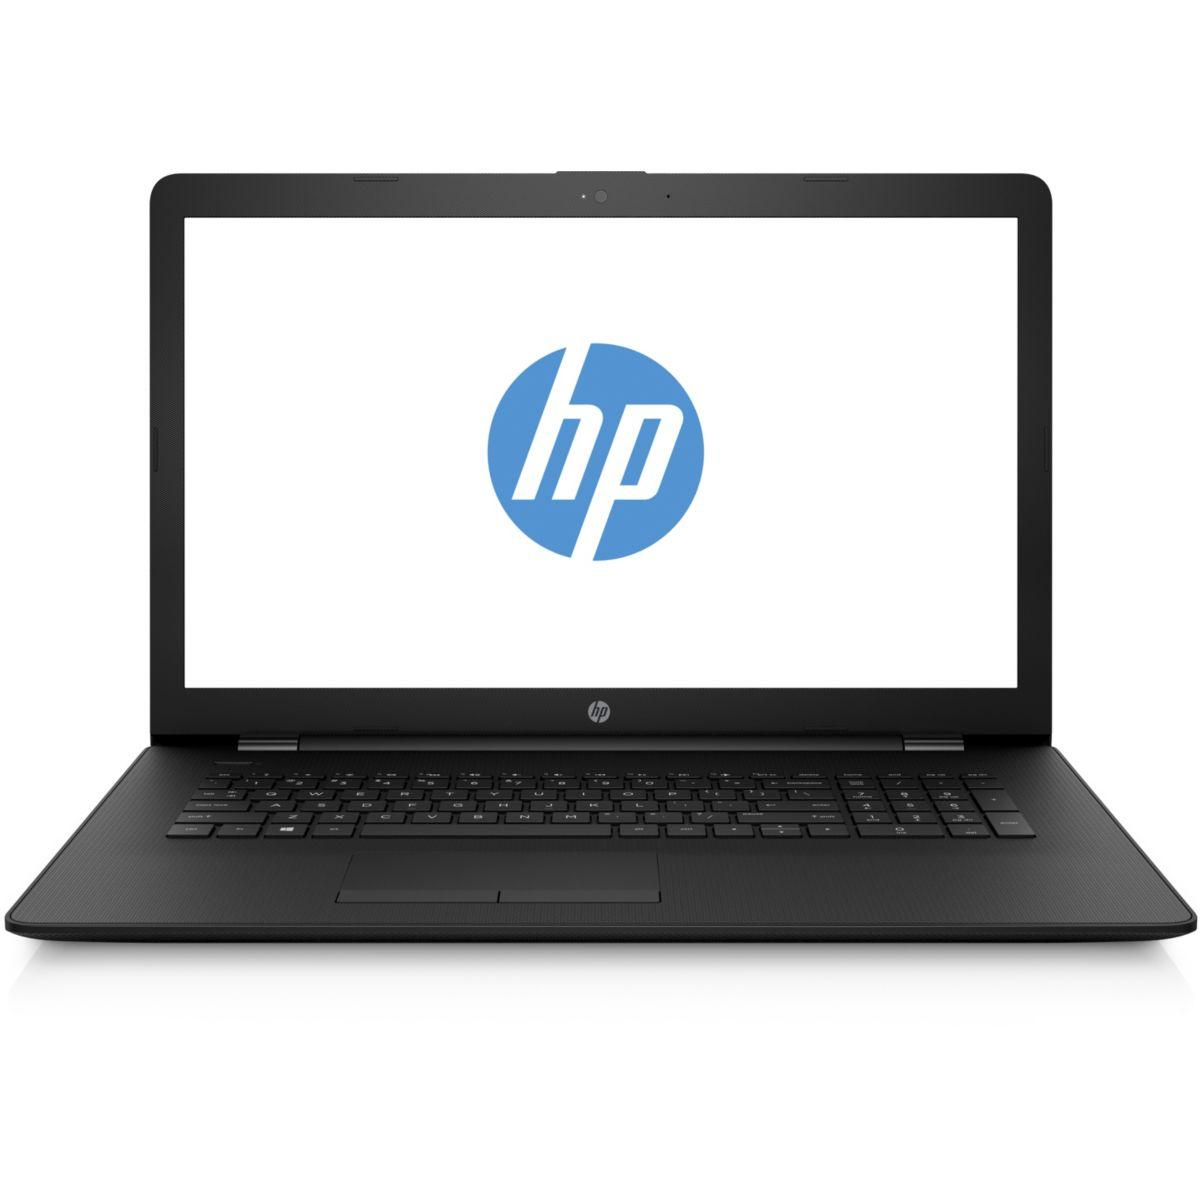 Pc portable hp 17-bs078nf (photo)